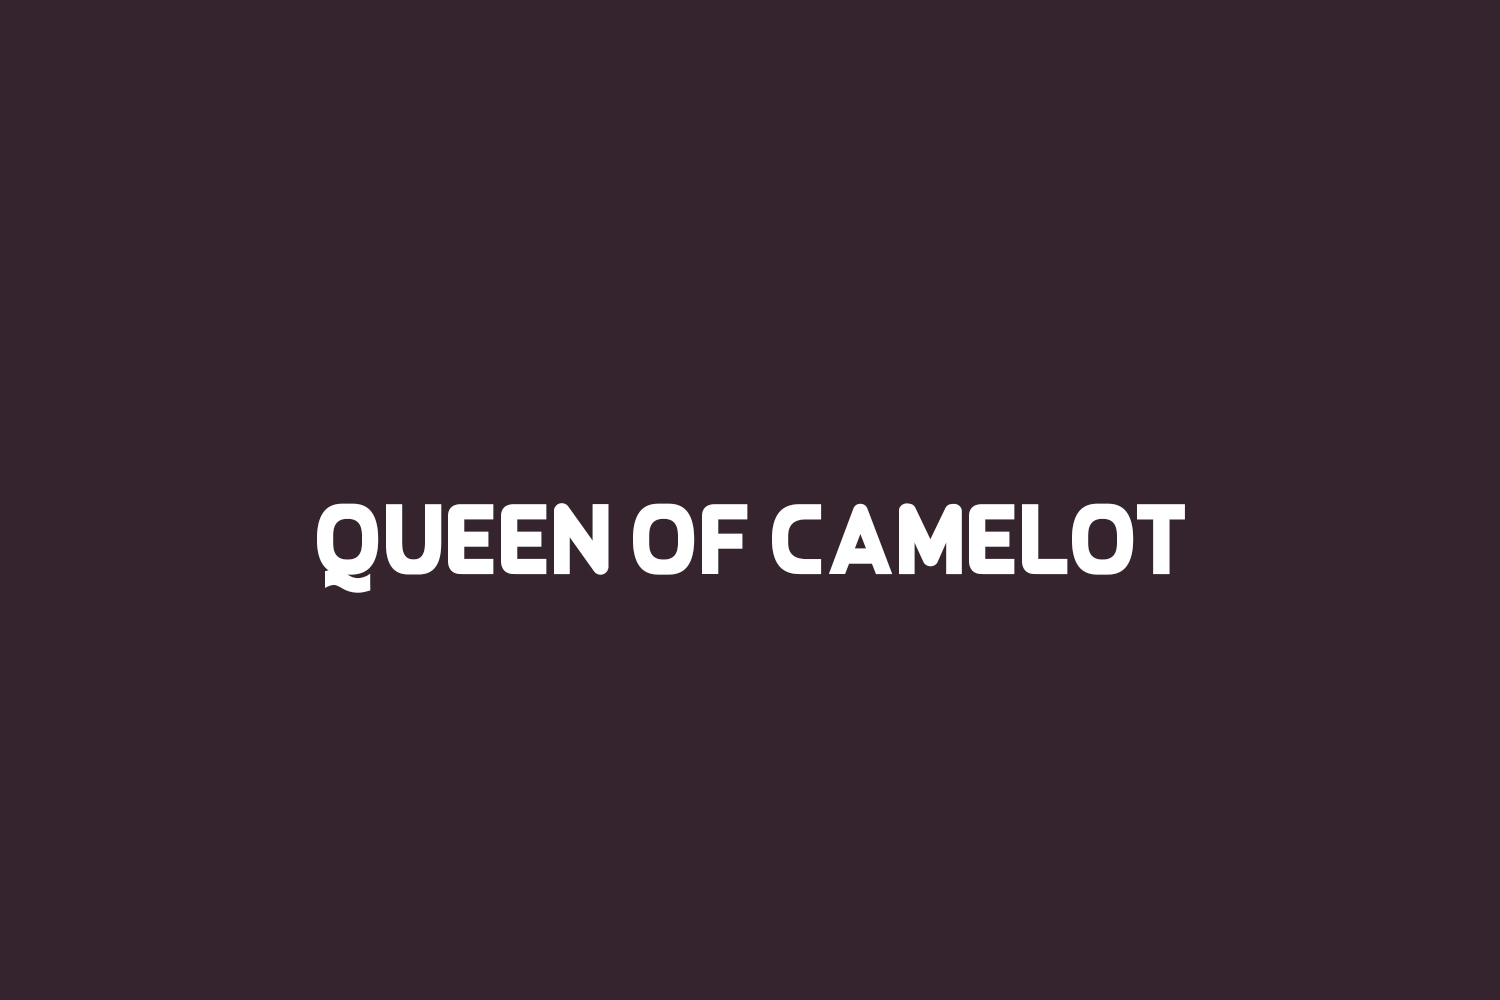 Queen of Camelot Free Font